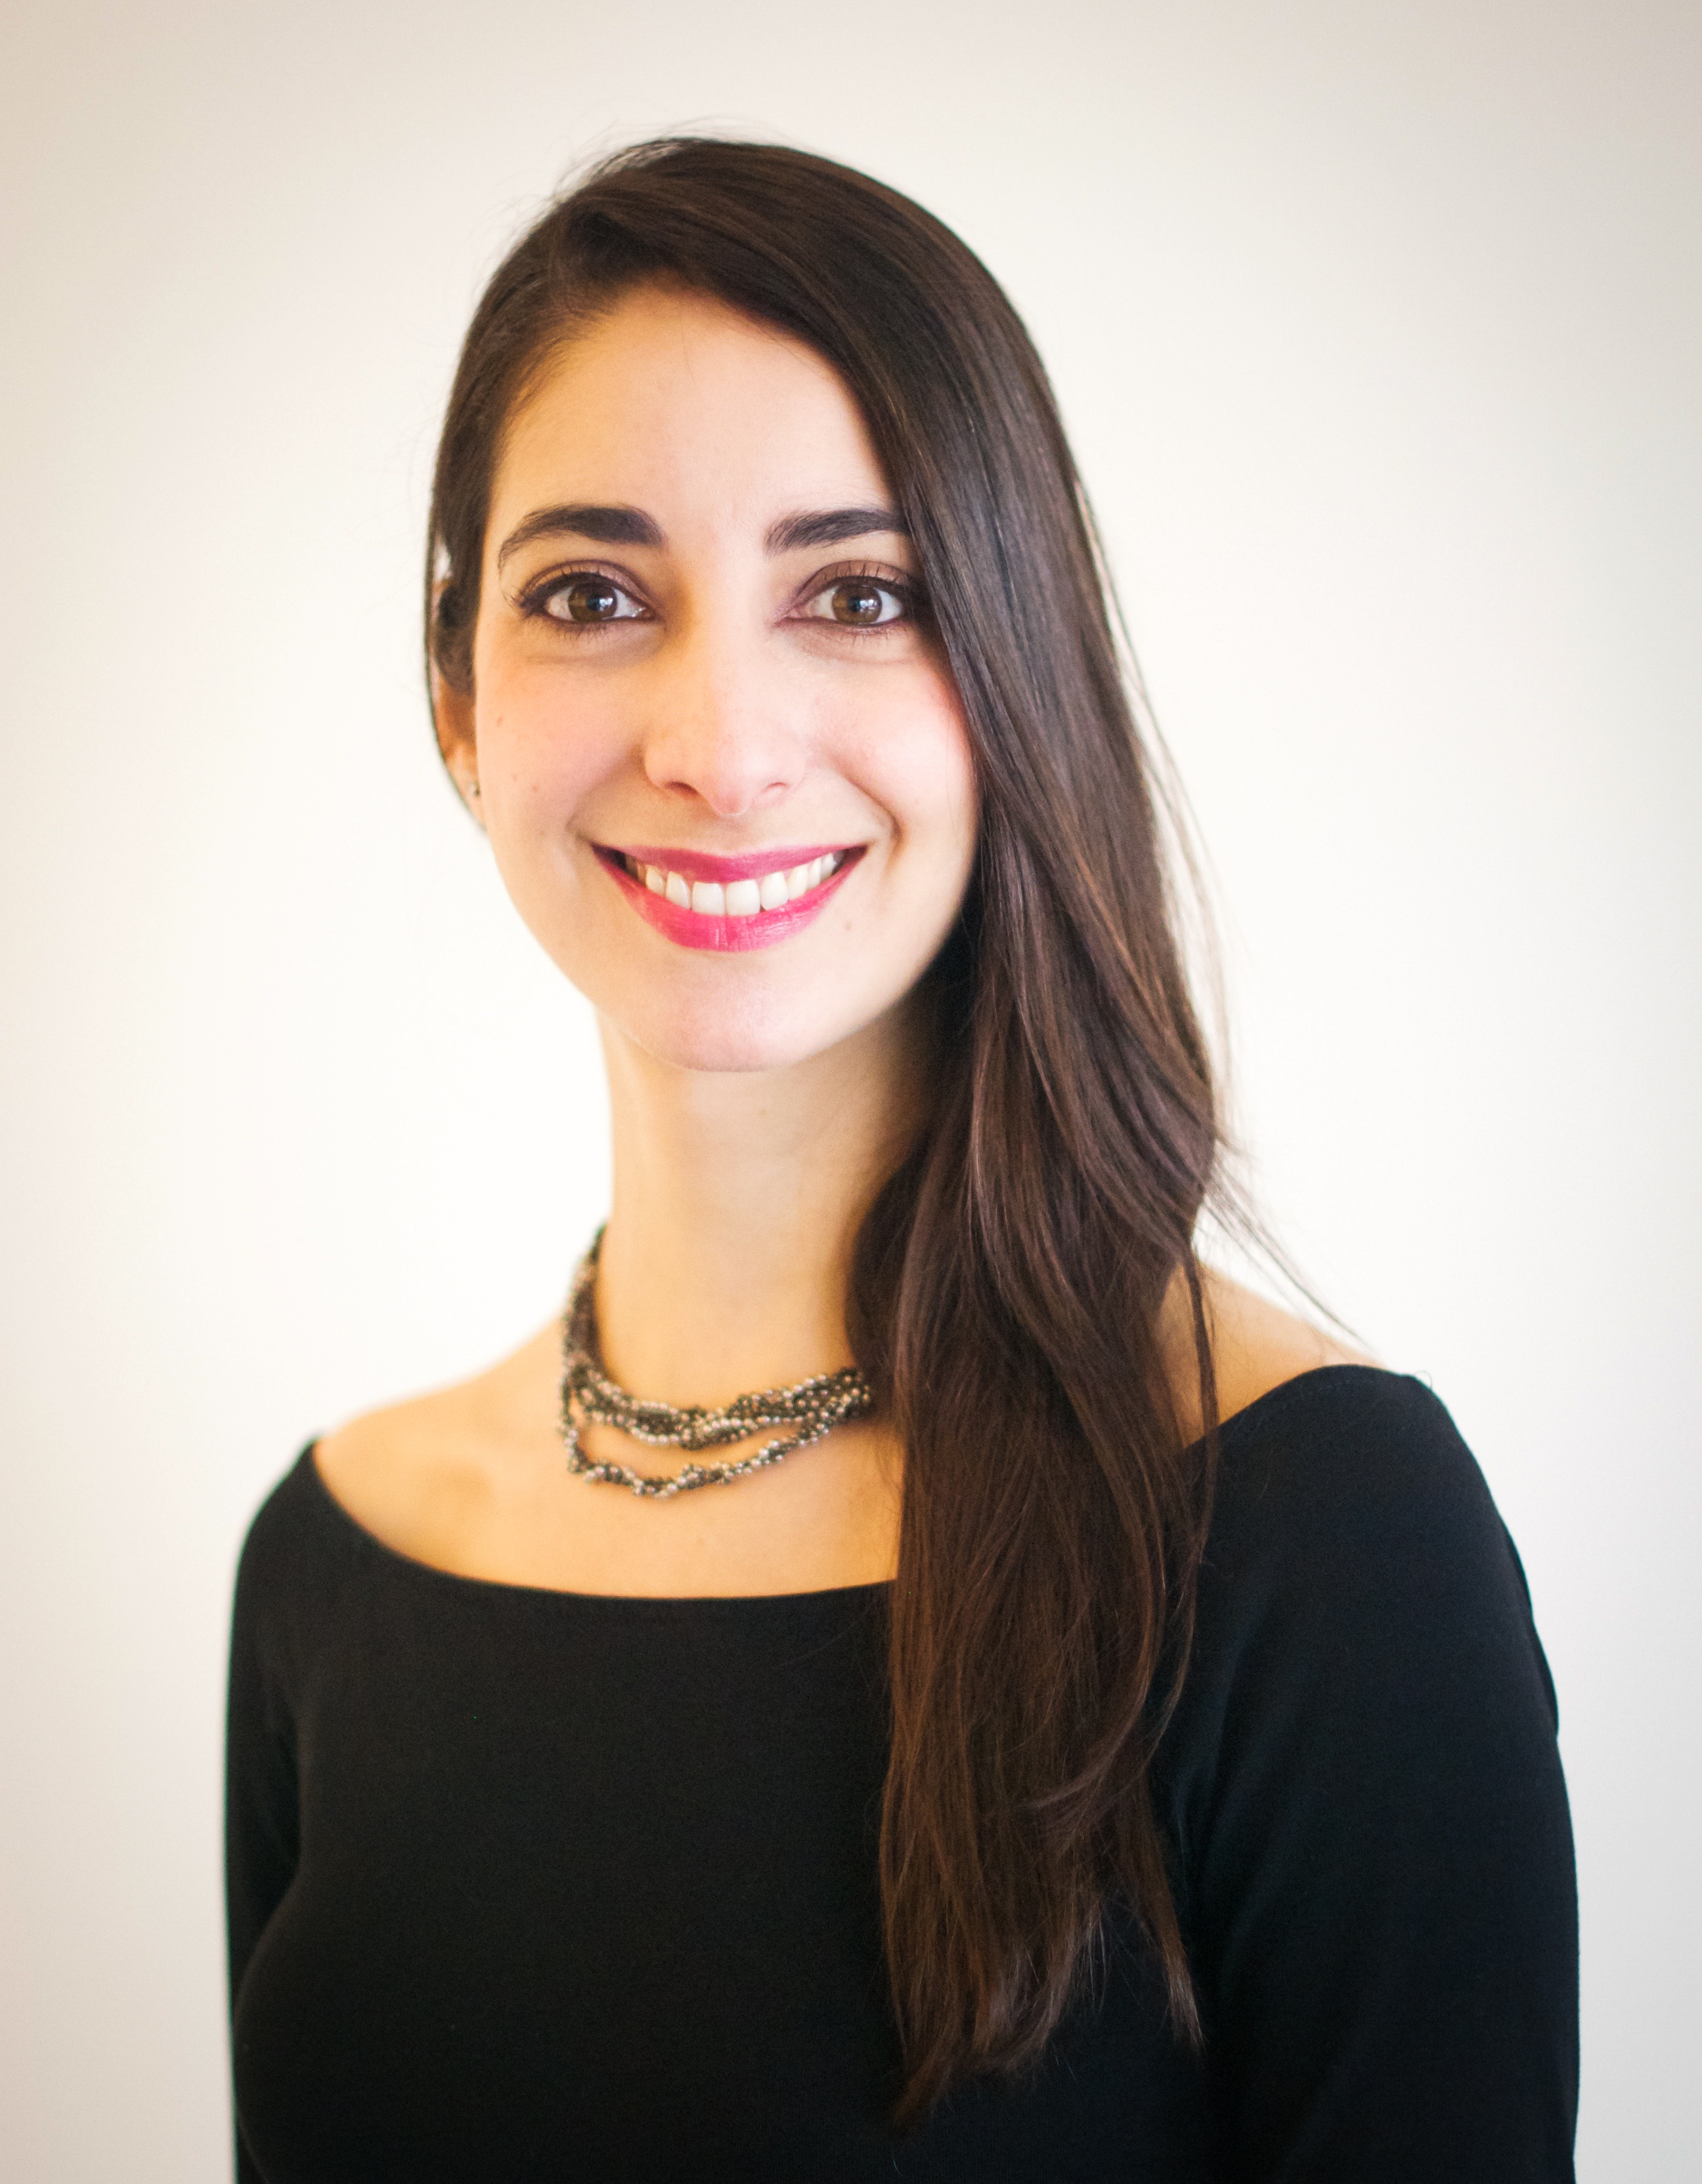 UNT College of Music doctoral student named international peace scholar